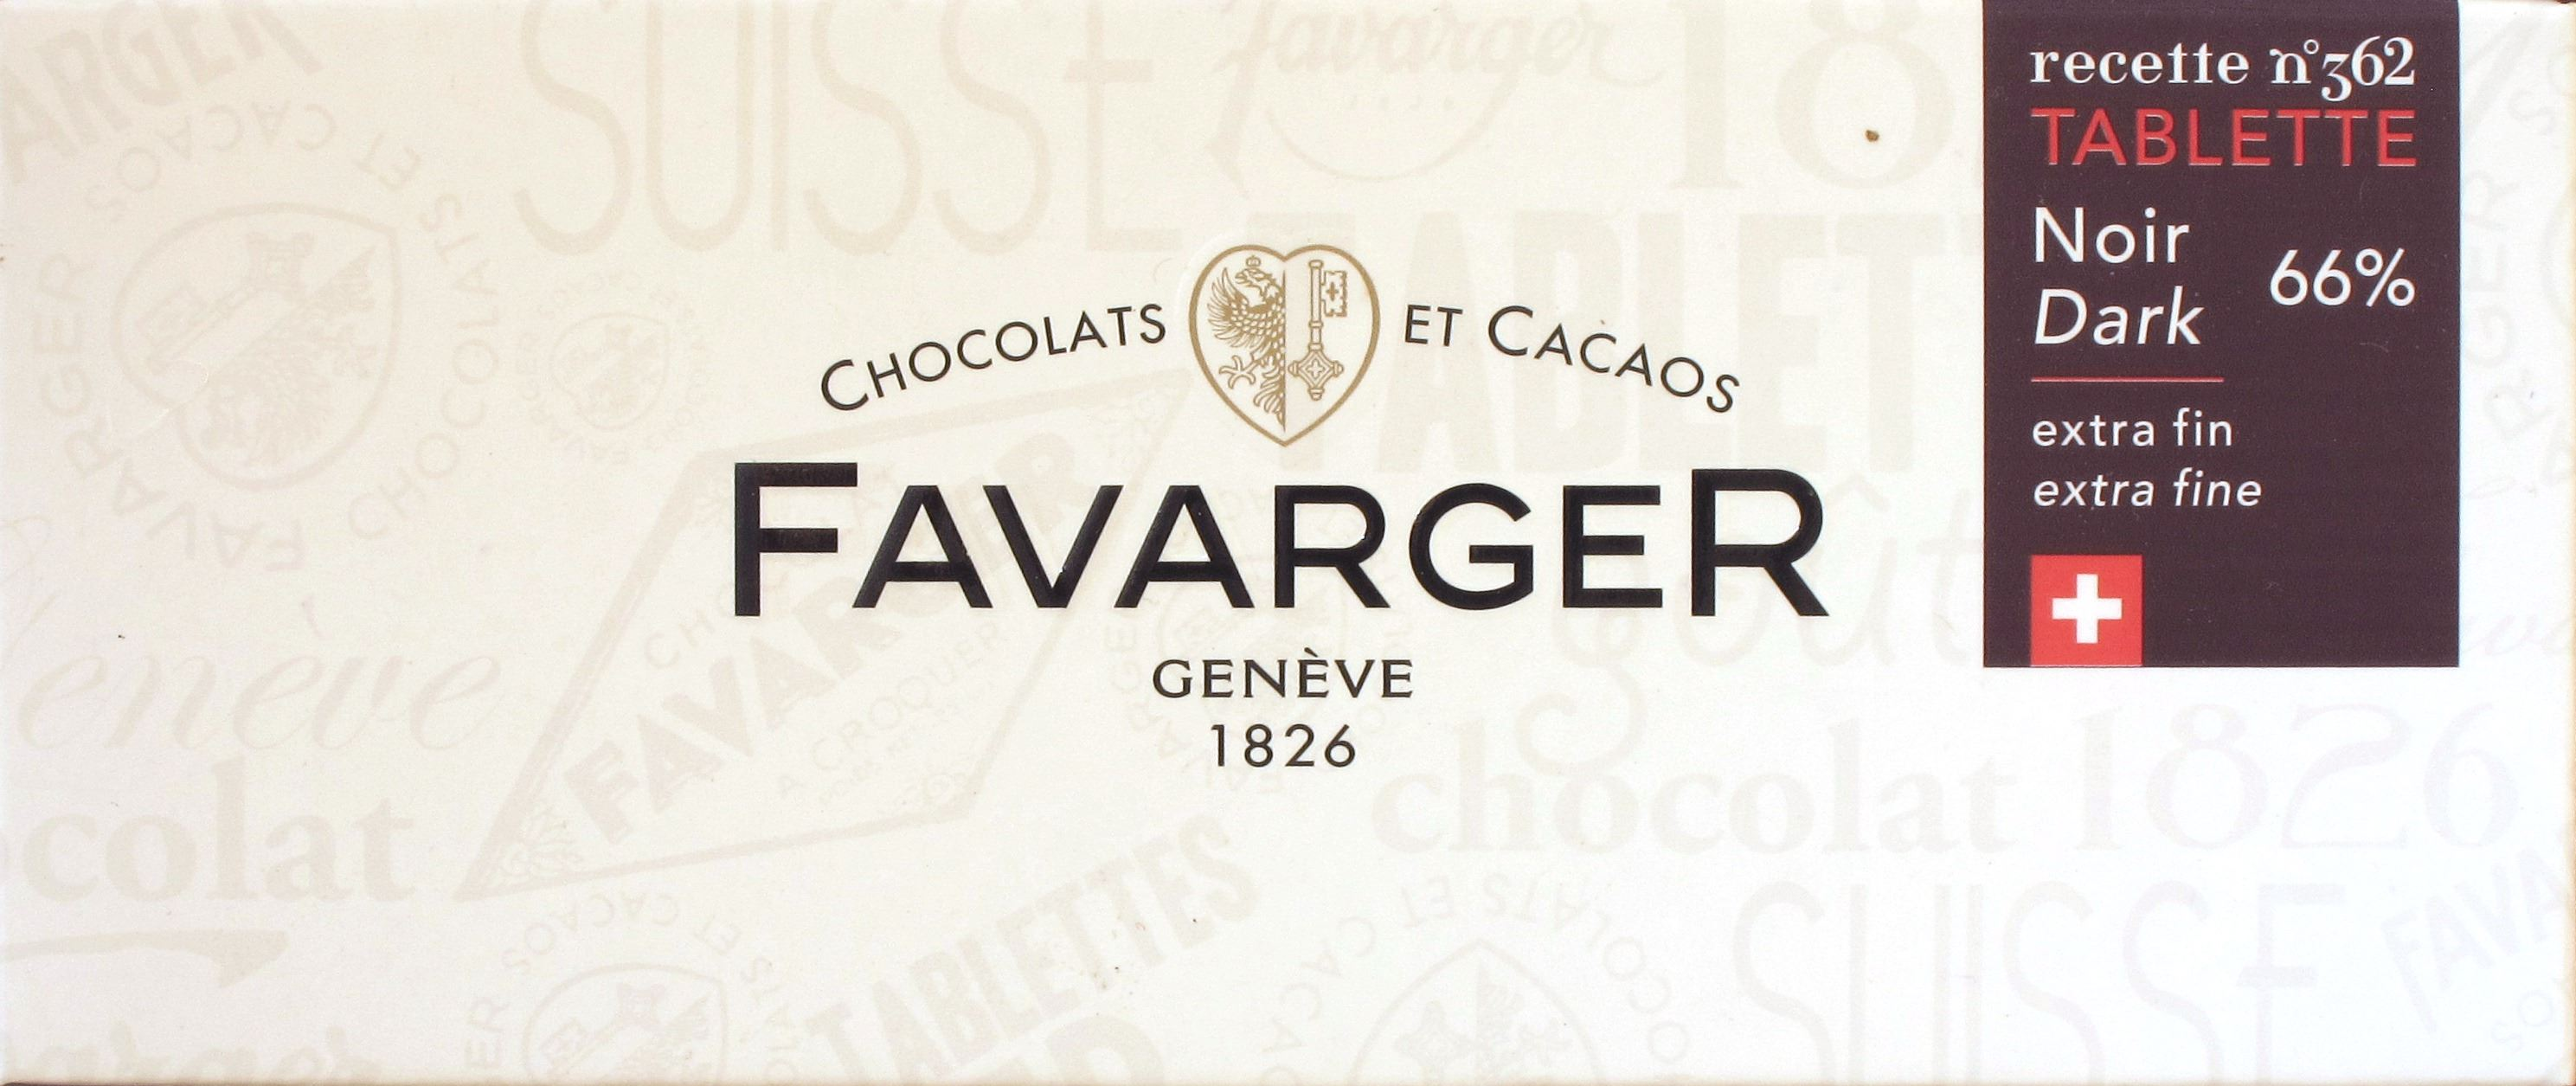 Favarger Dark/Noir 66%